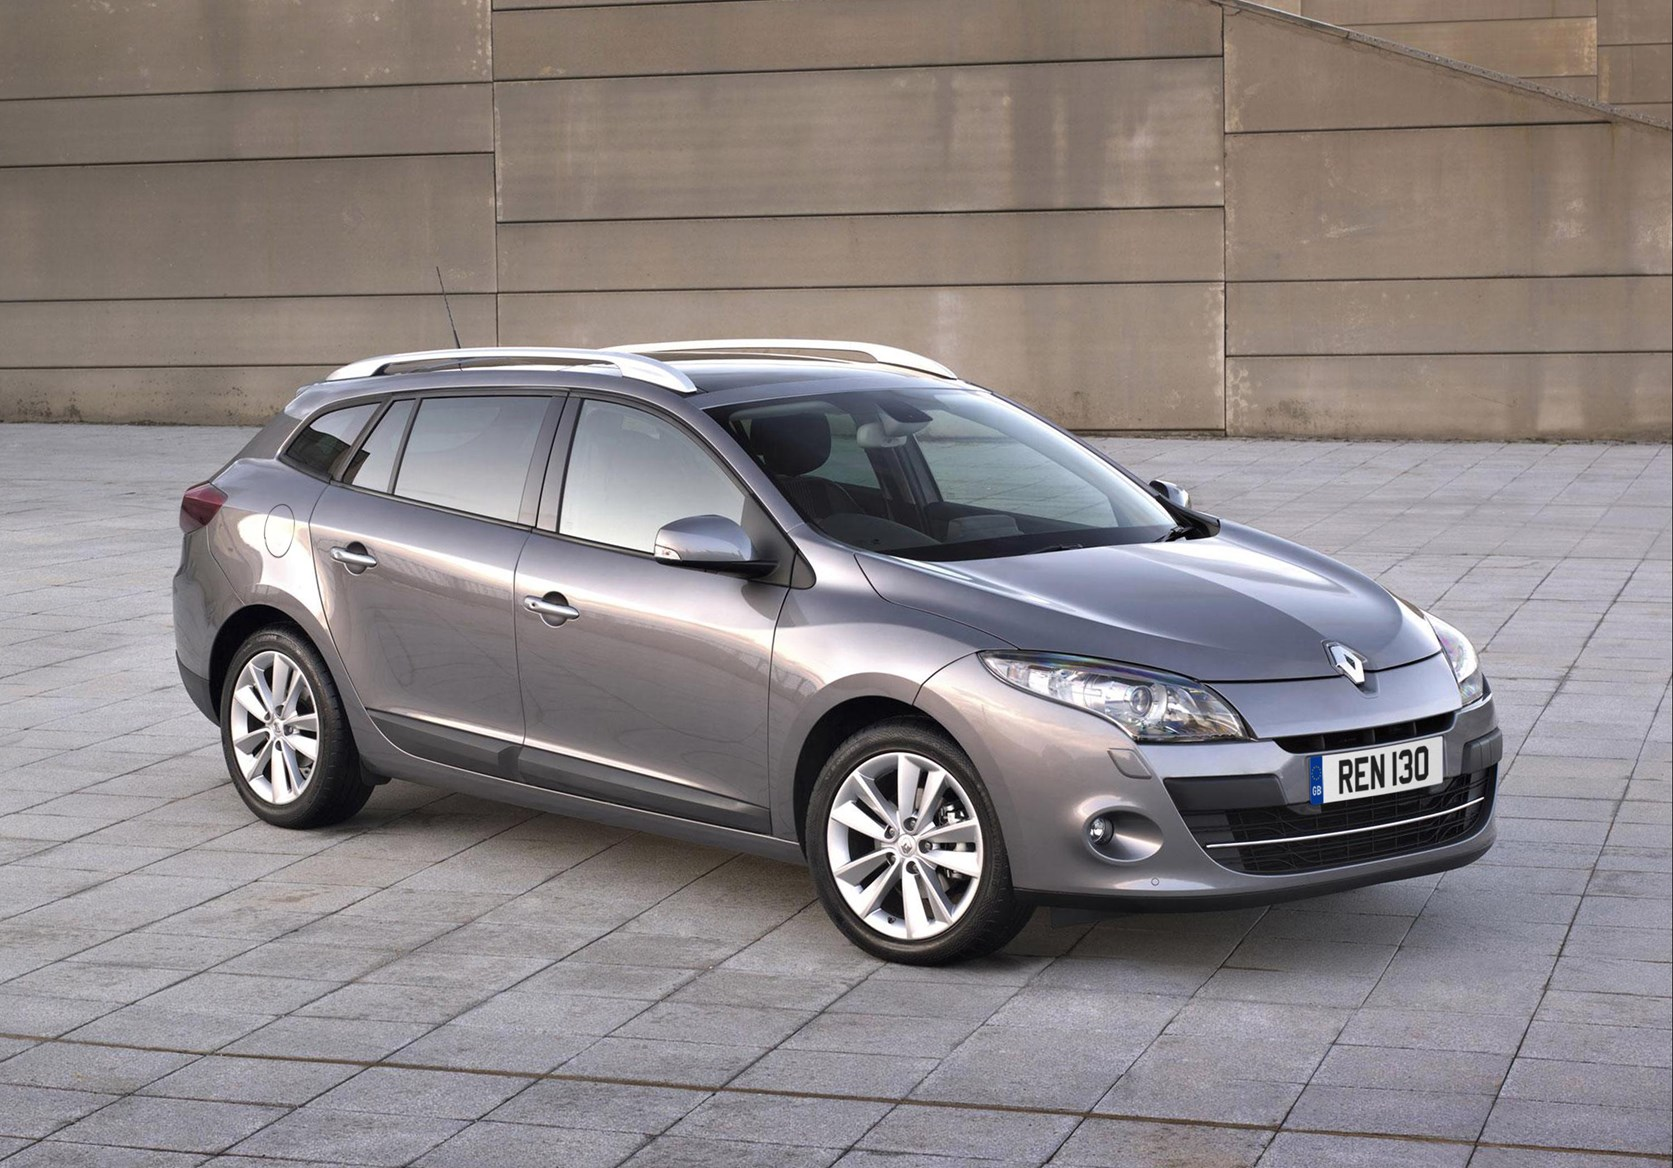 renault megane sport tourer review 2009 parkers. Black Bedroom Furniture Sets. Home Design Ideas